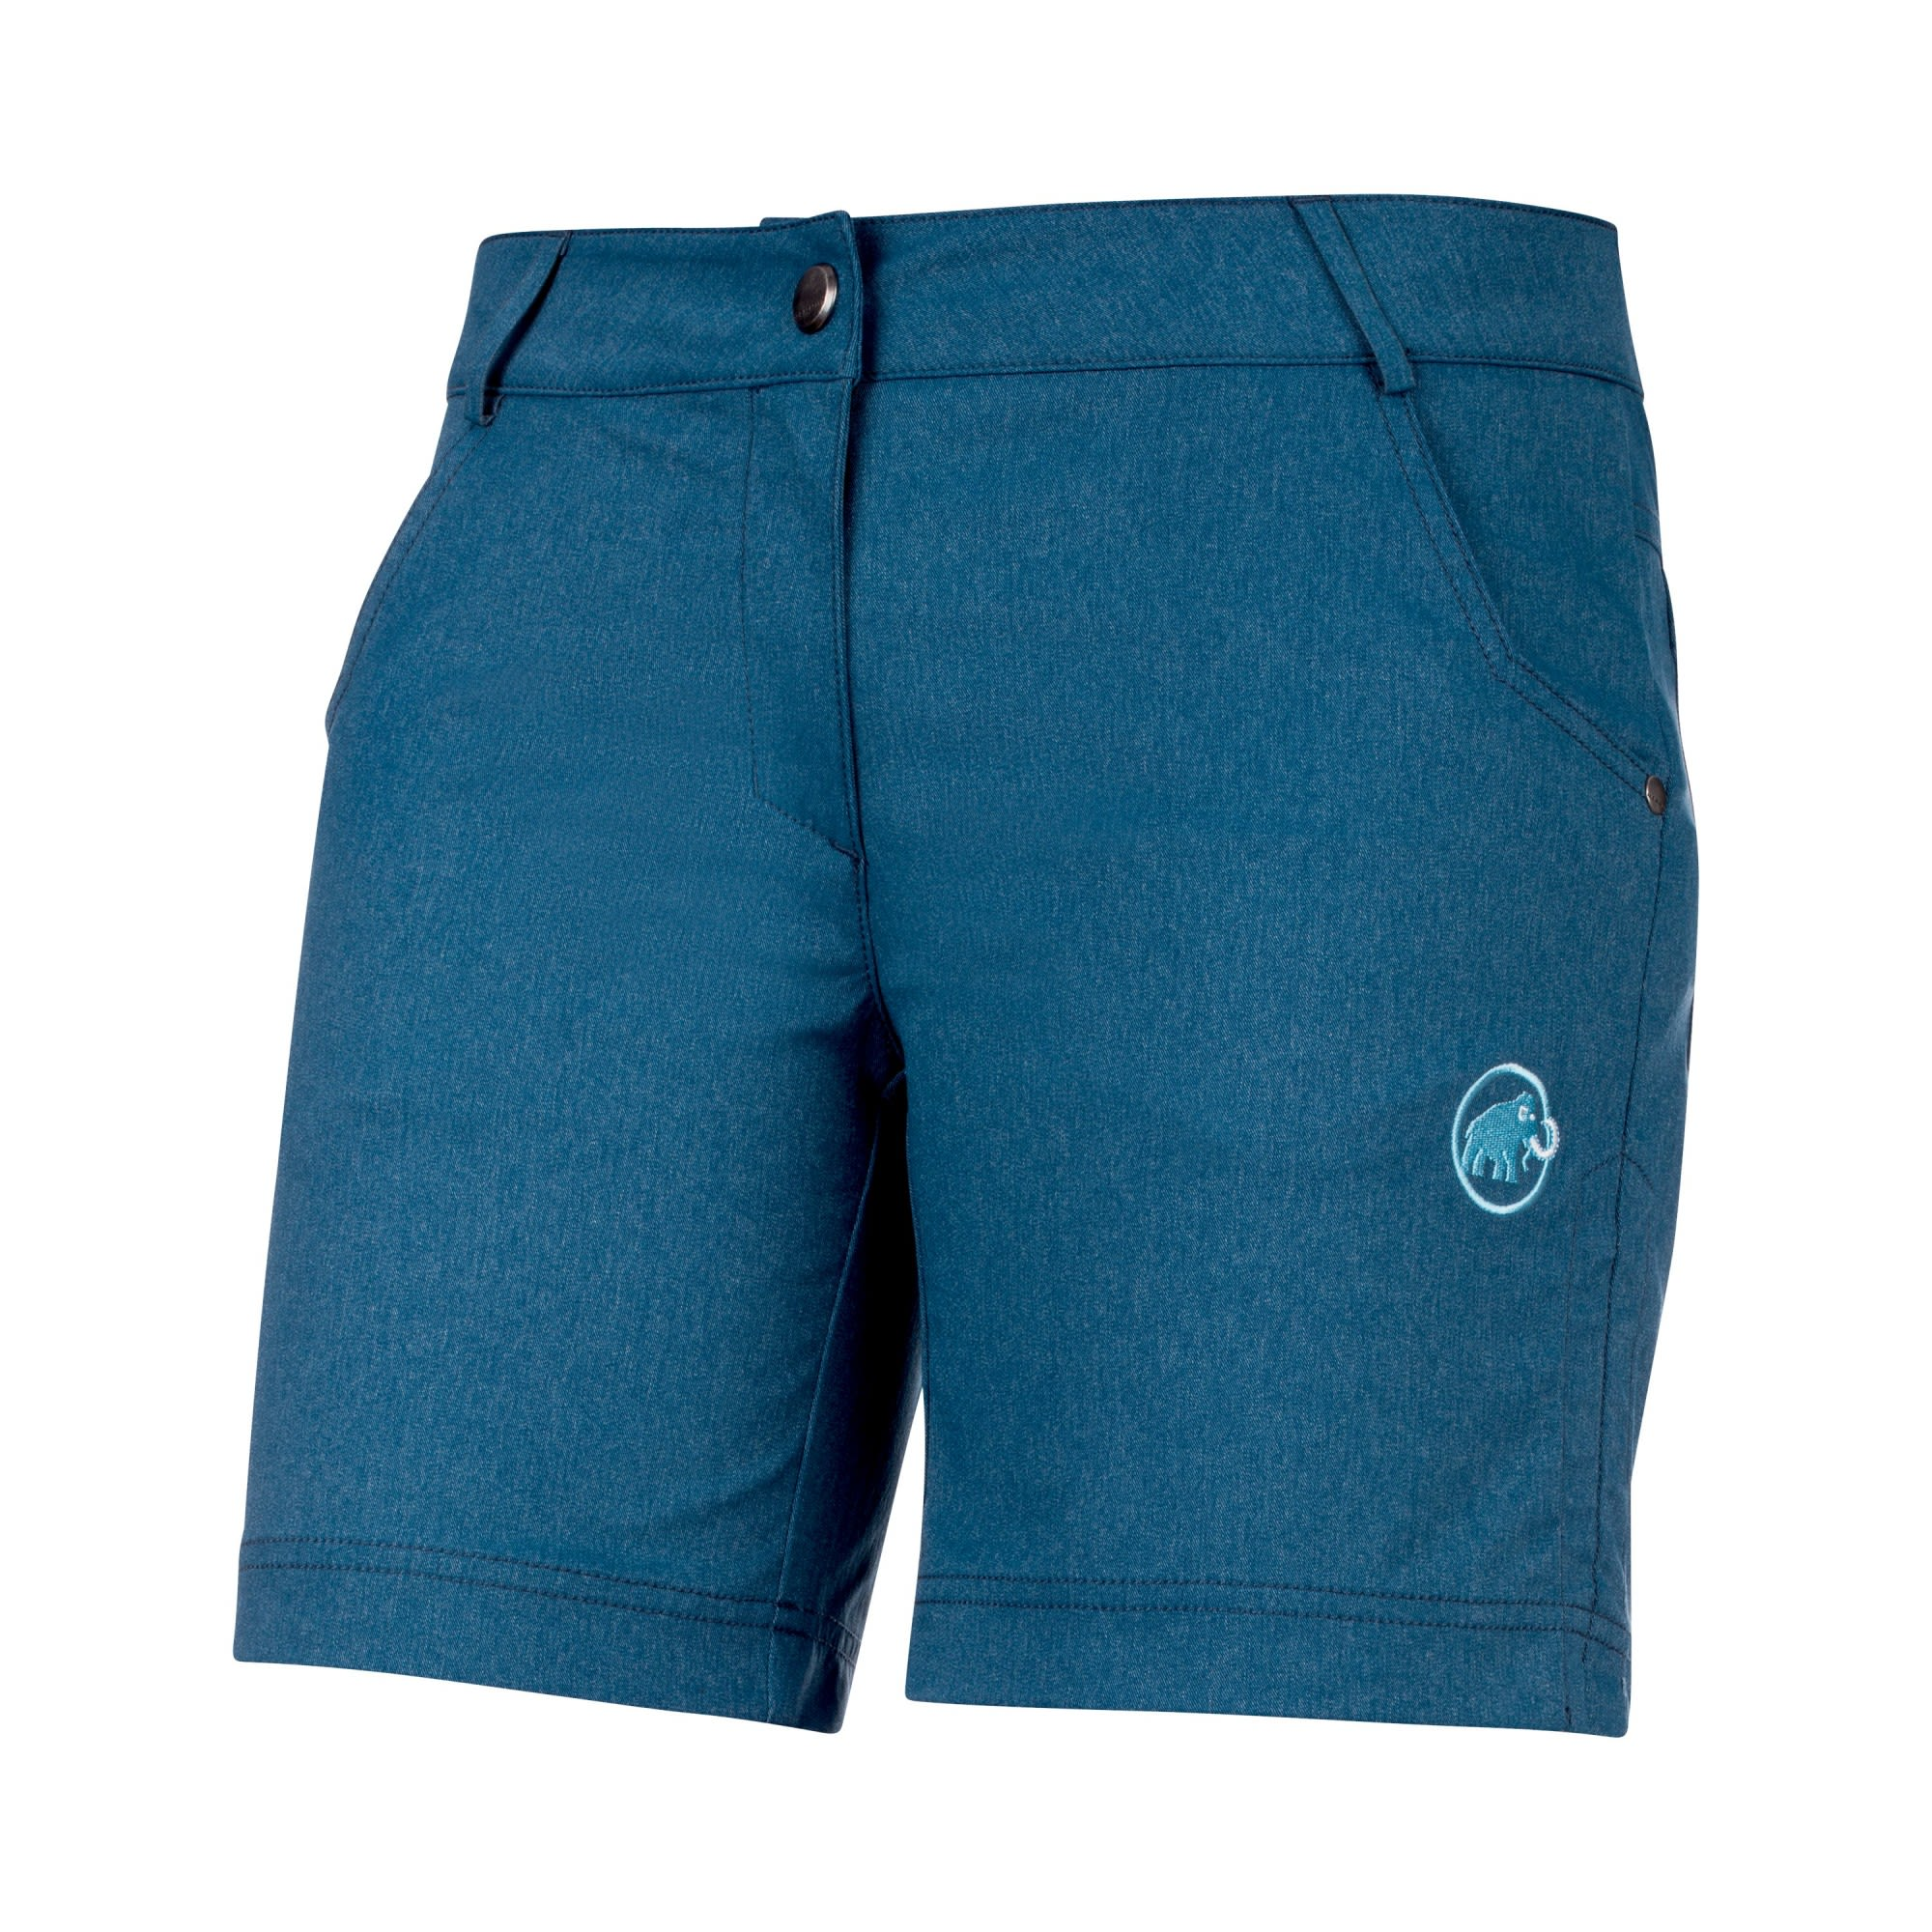 Mammut Massone Shorts Blau, Female Shorts, 38